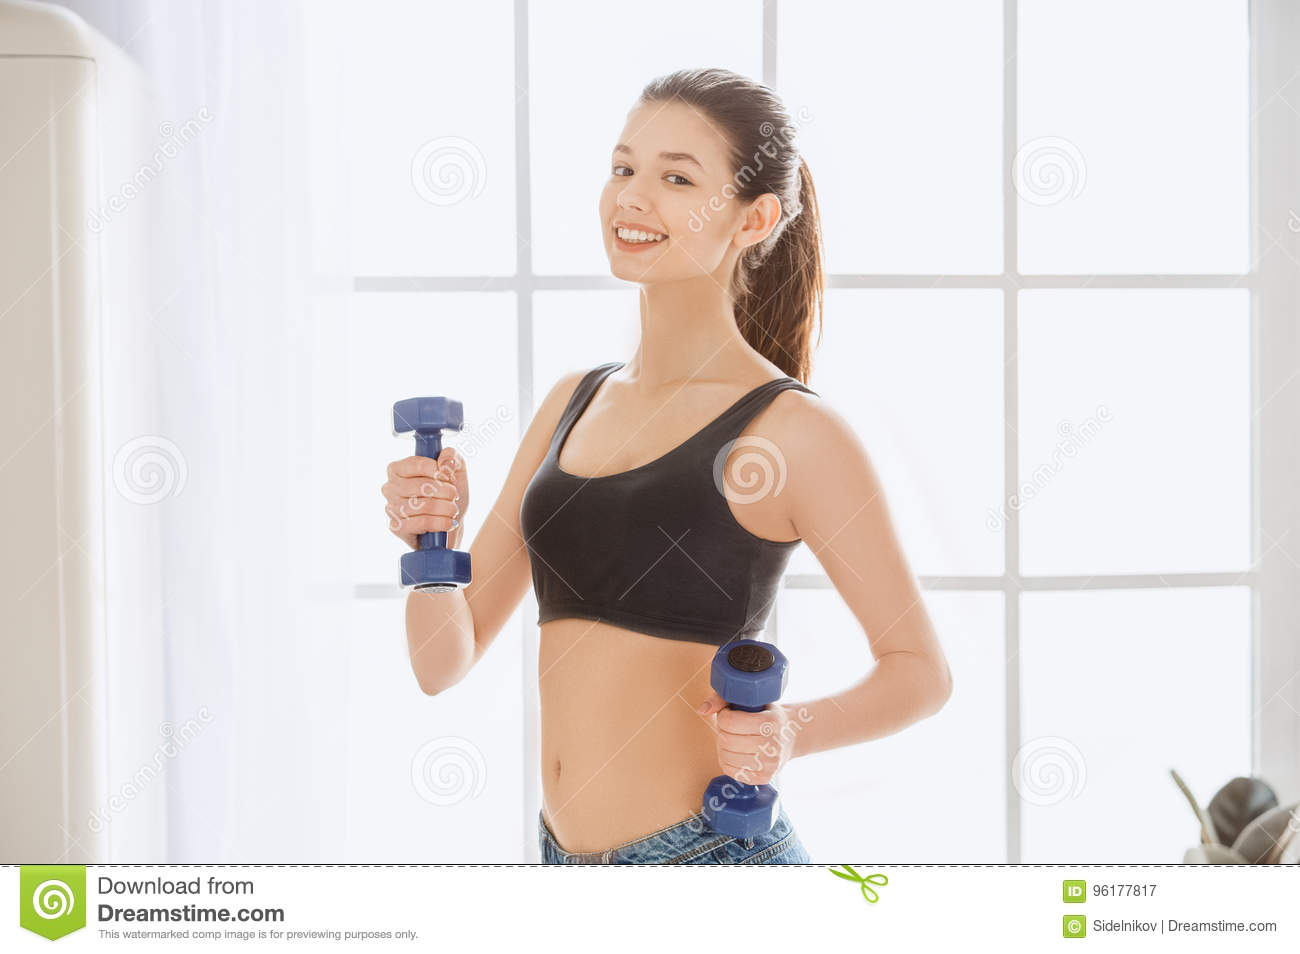 491b3a93e4 Young Woman Weight Loss Perfect Body Shape Stock Image - Image of ...